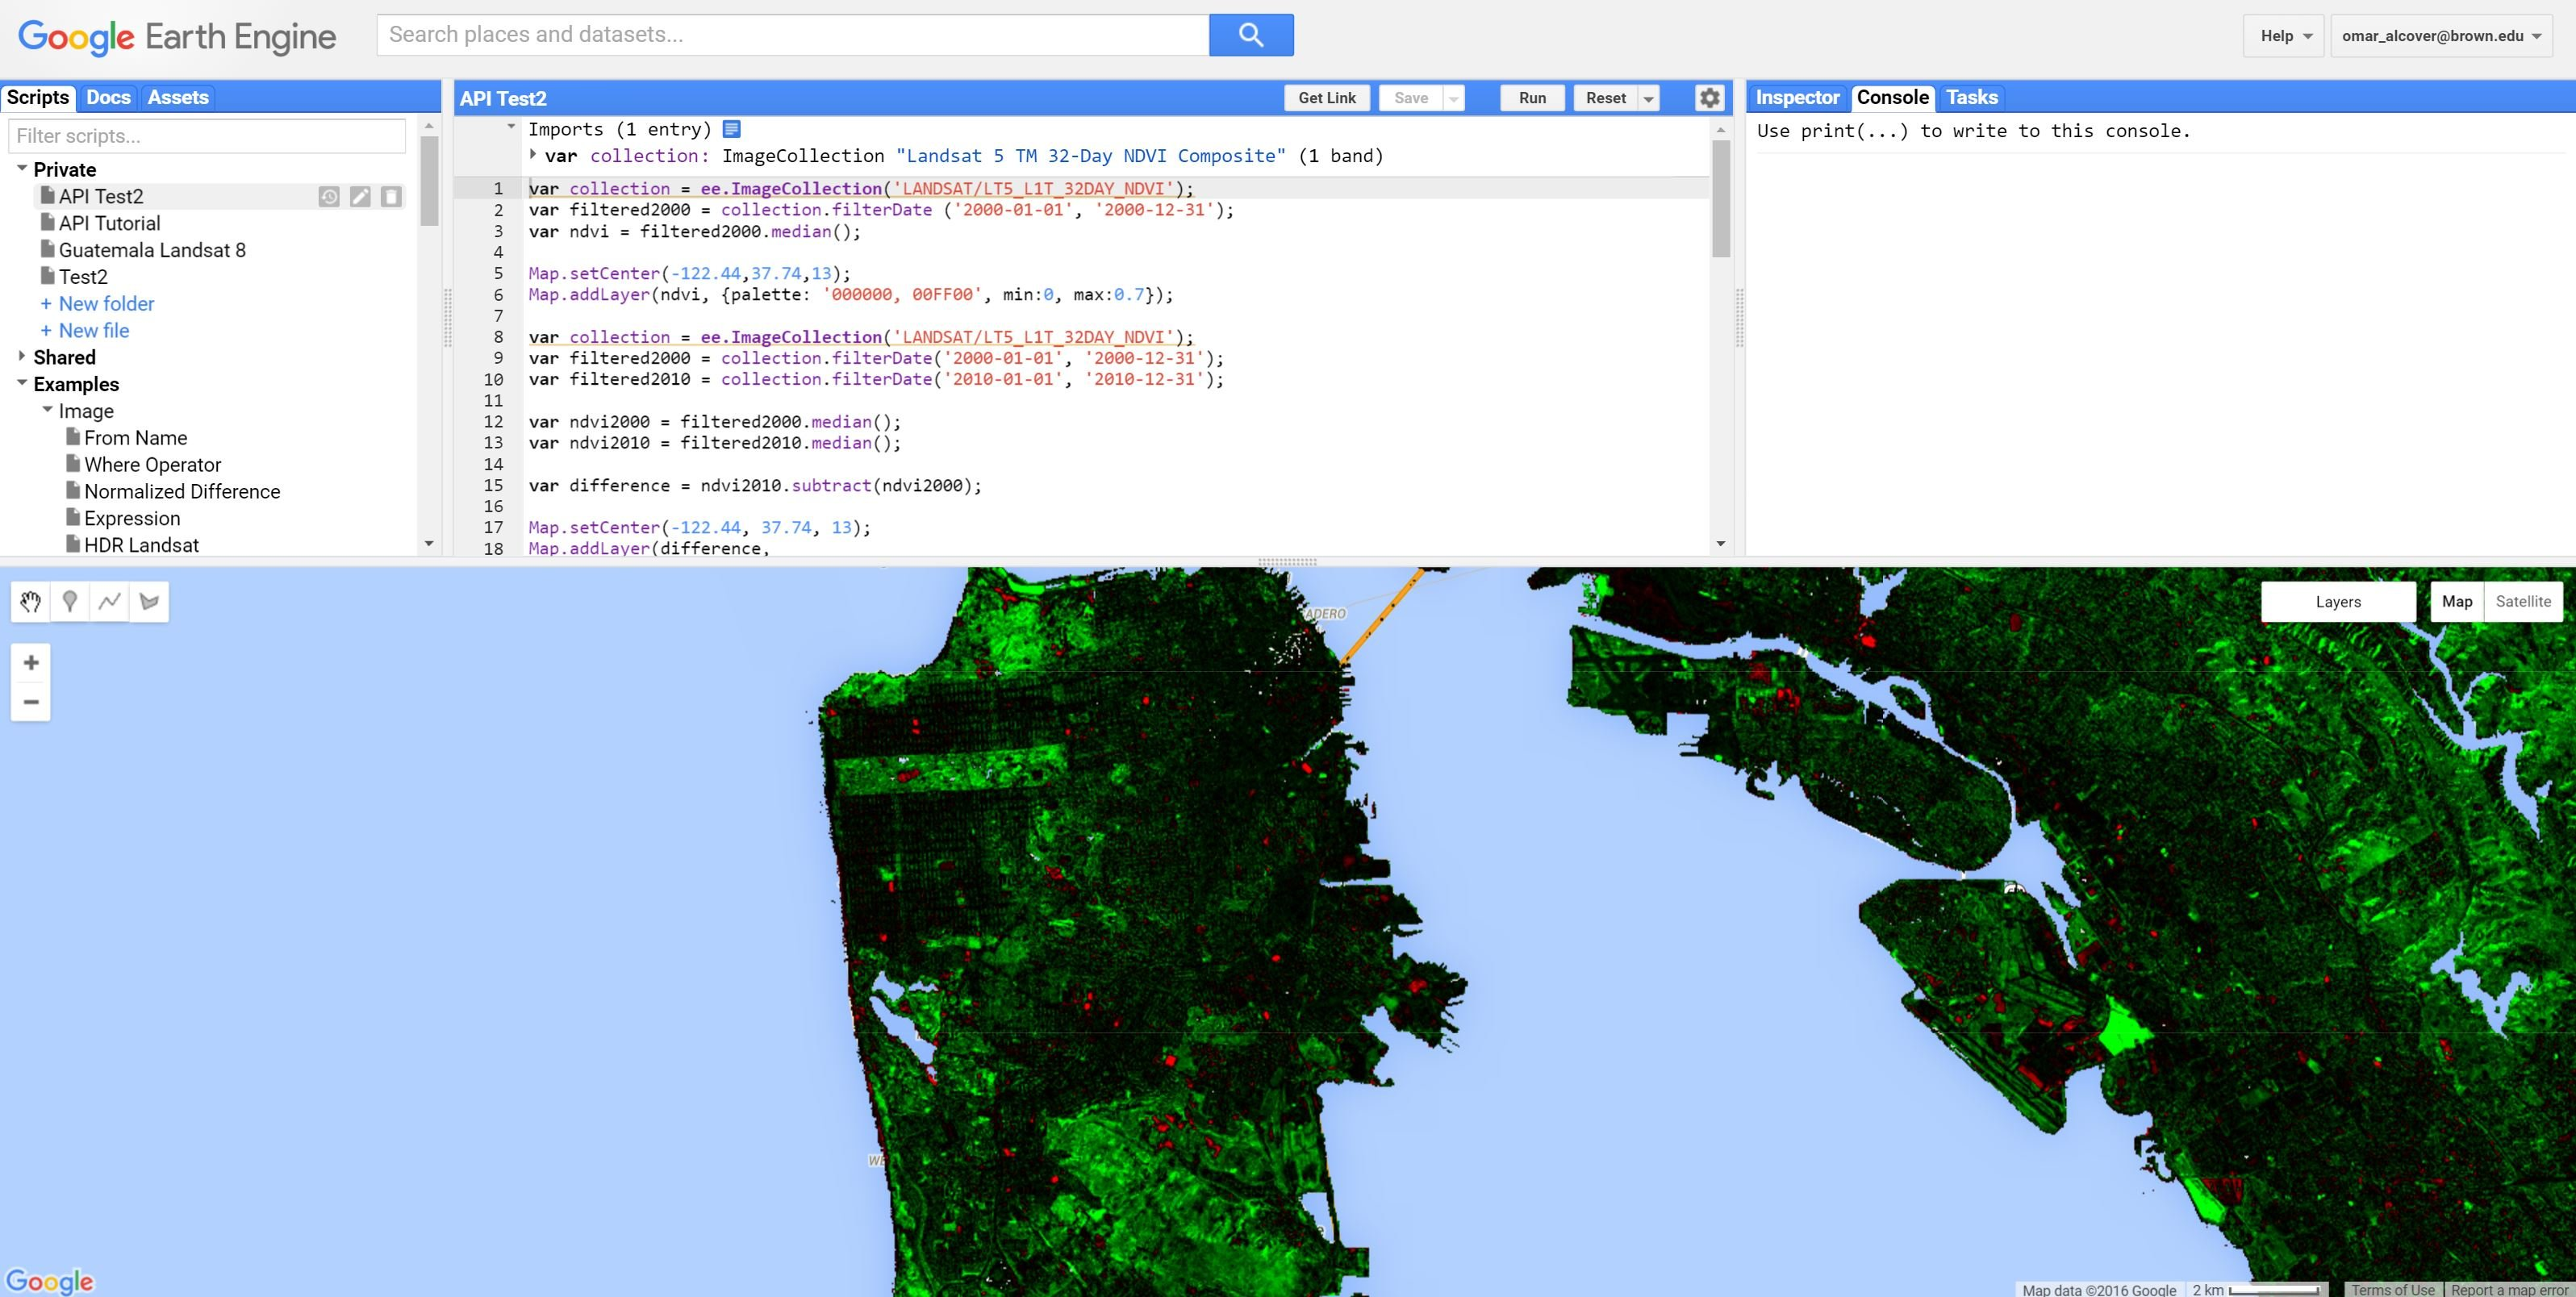 Internet archaeol 42 firpi review of a review of google earth figure 2 landsat ndvi composition scene over san francisco oakland and alameda california with just a few python scripts one can obtain ndvi data from gumiabroncs Gallery